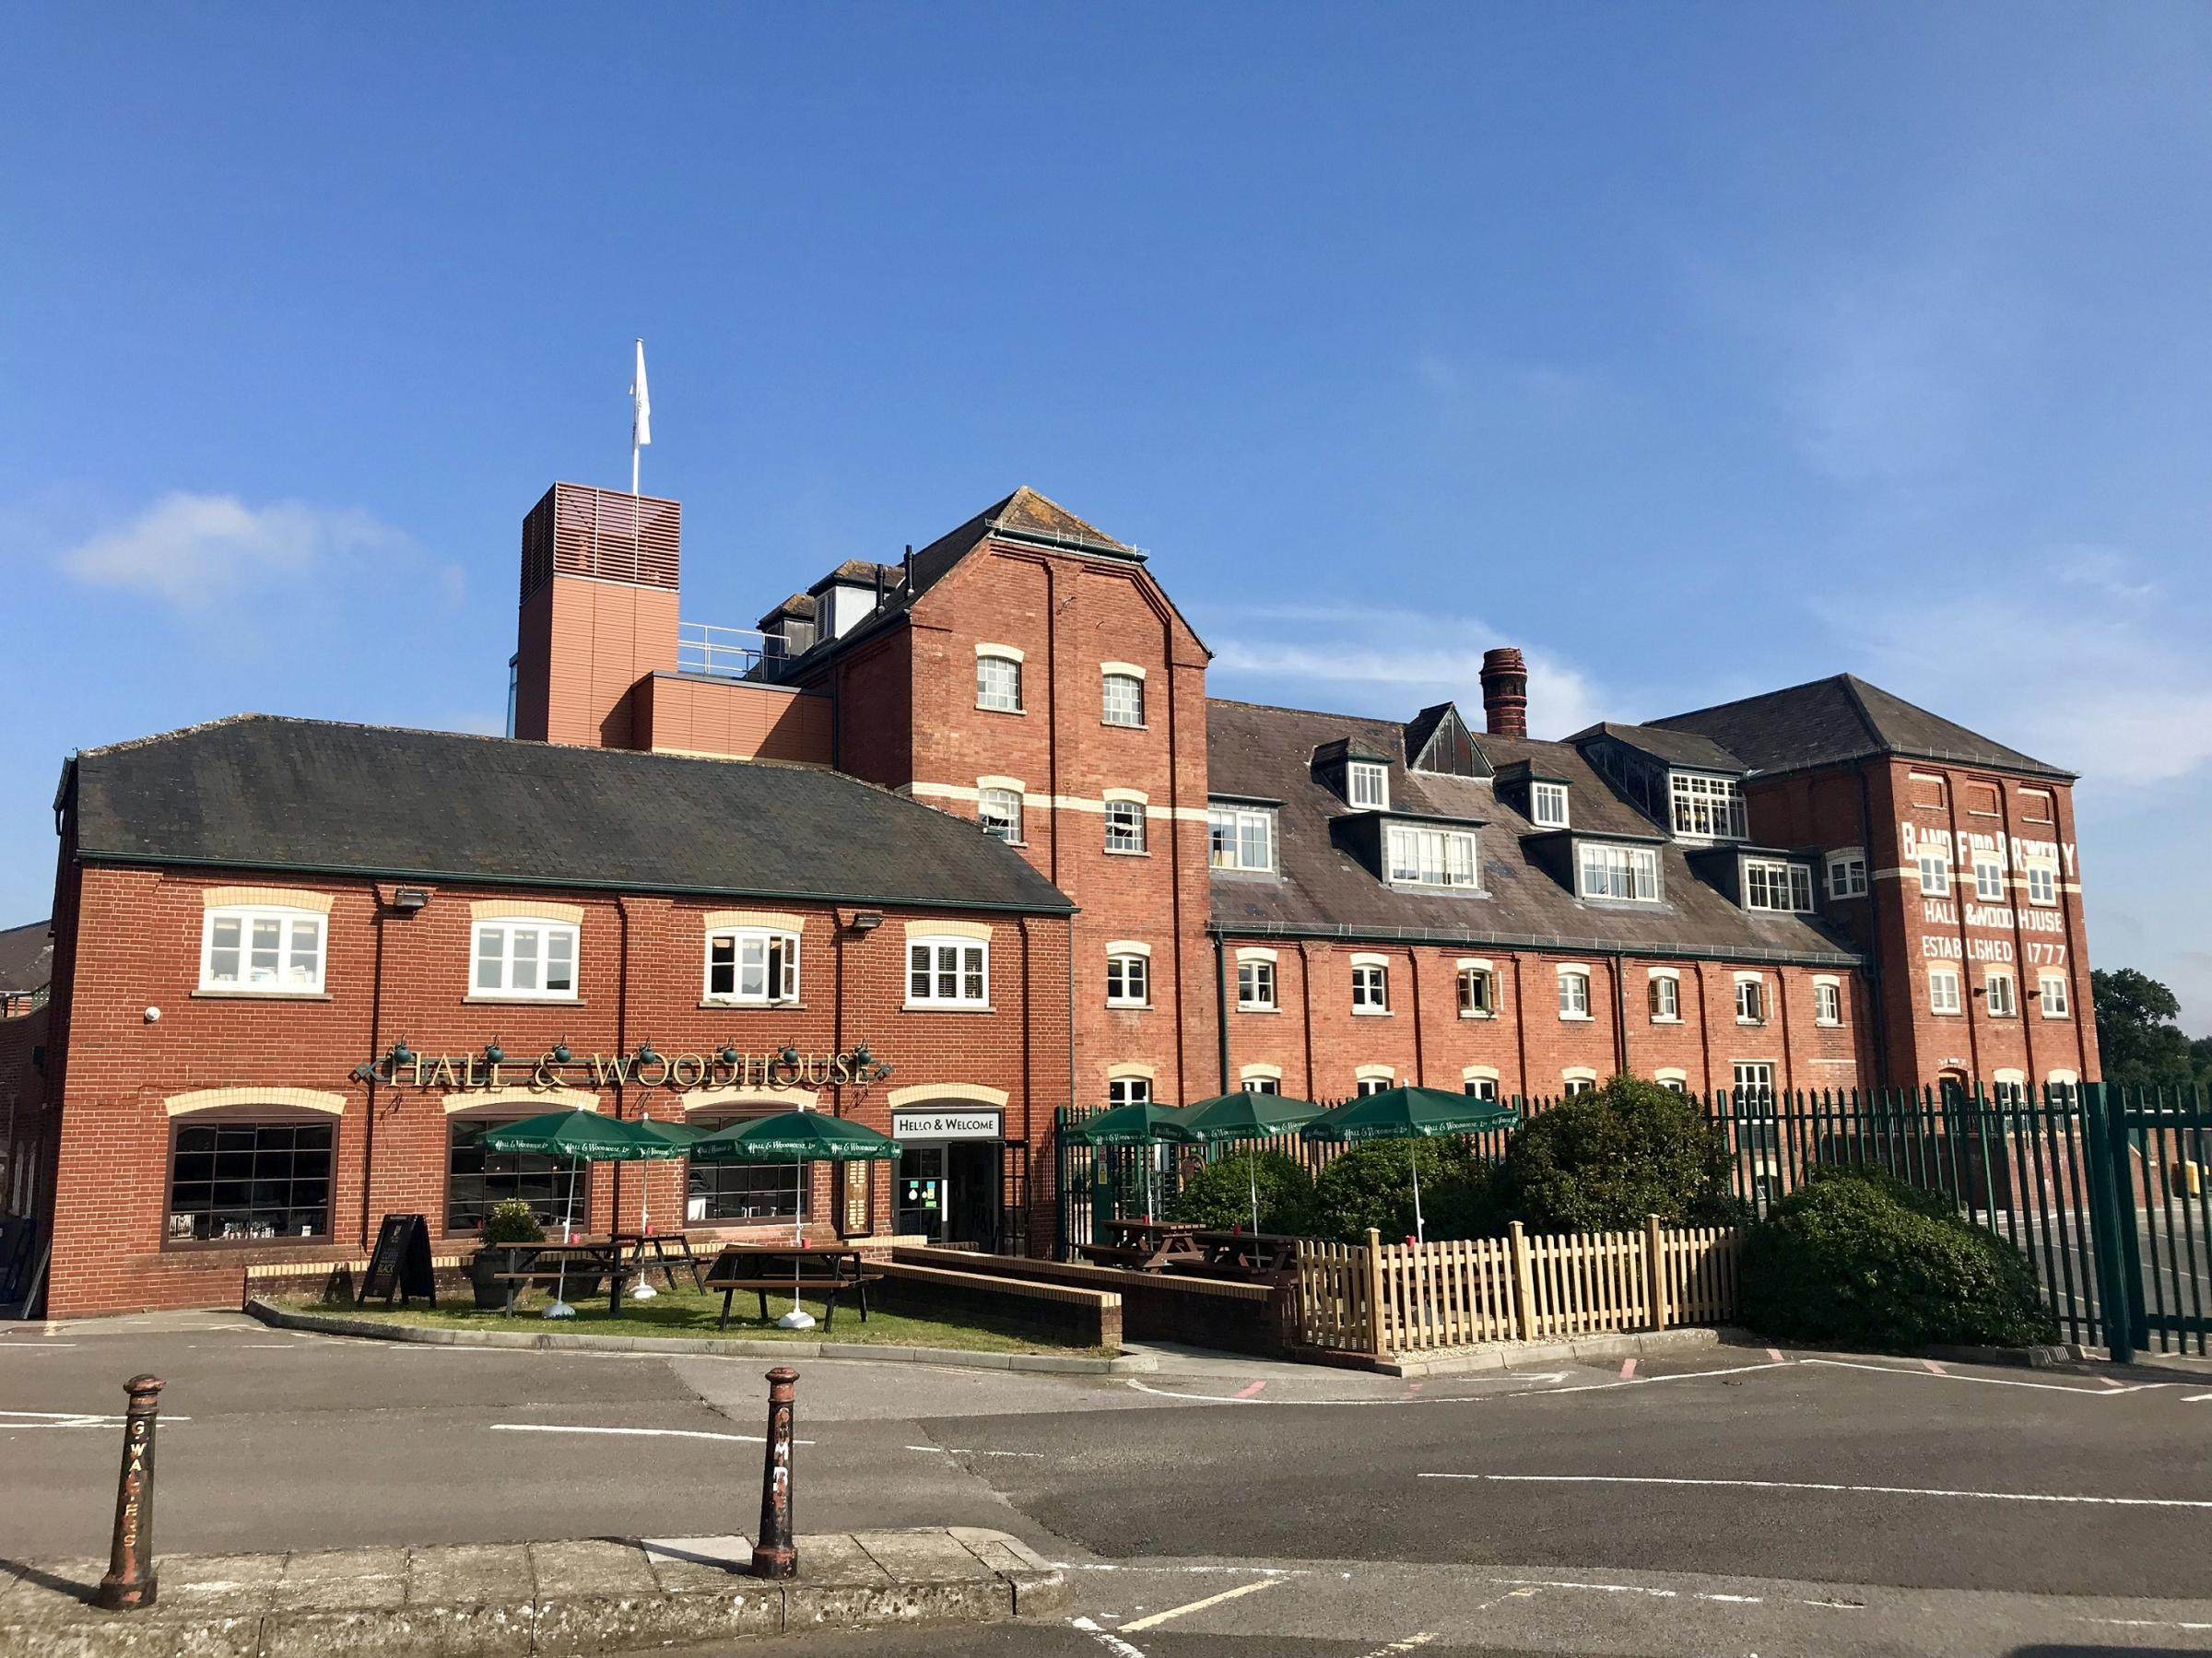 Hall & Woodhouse launches initiatives for staff's mental health